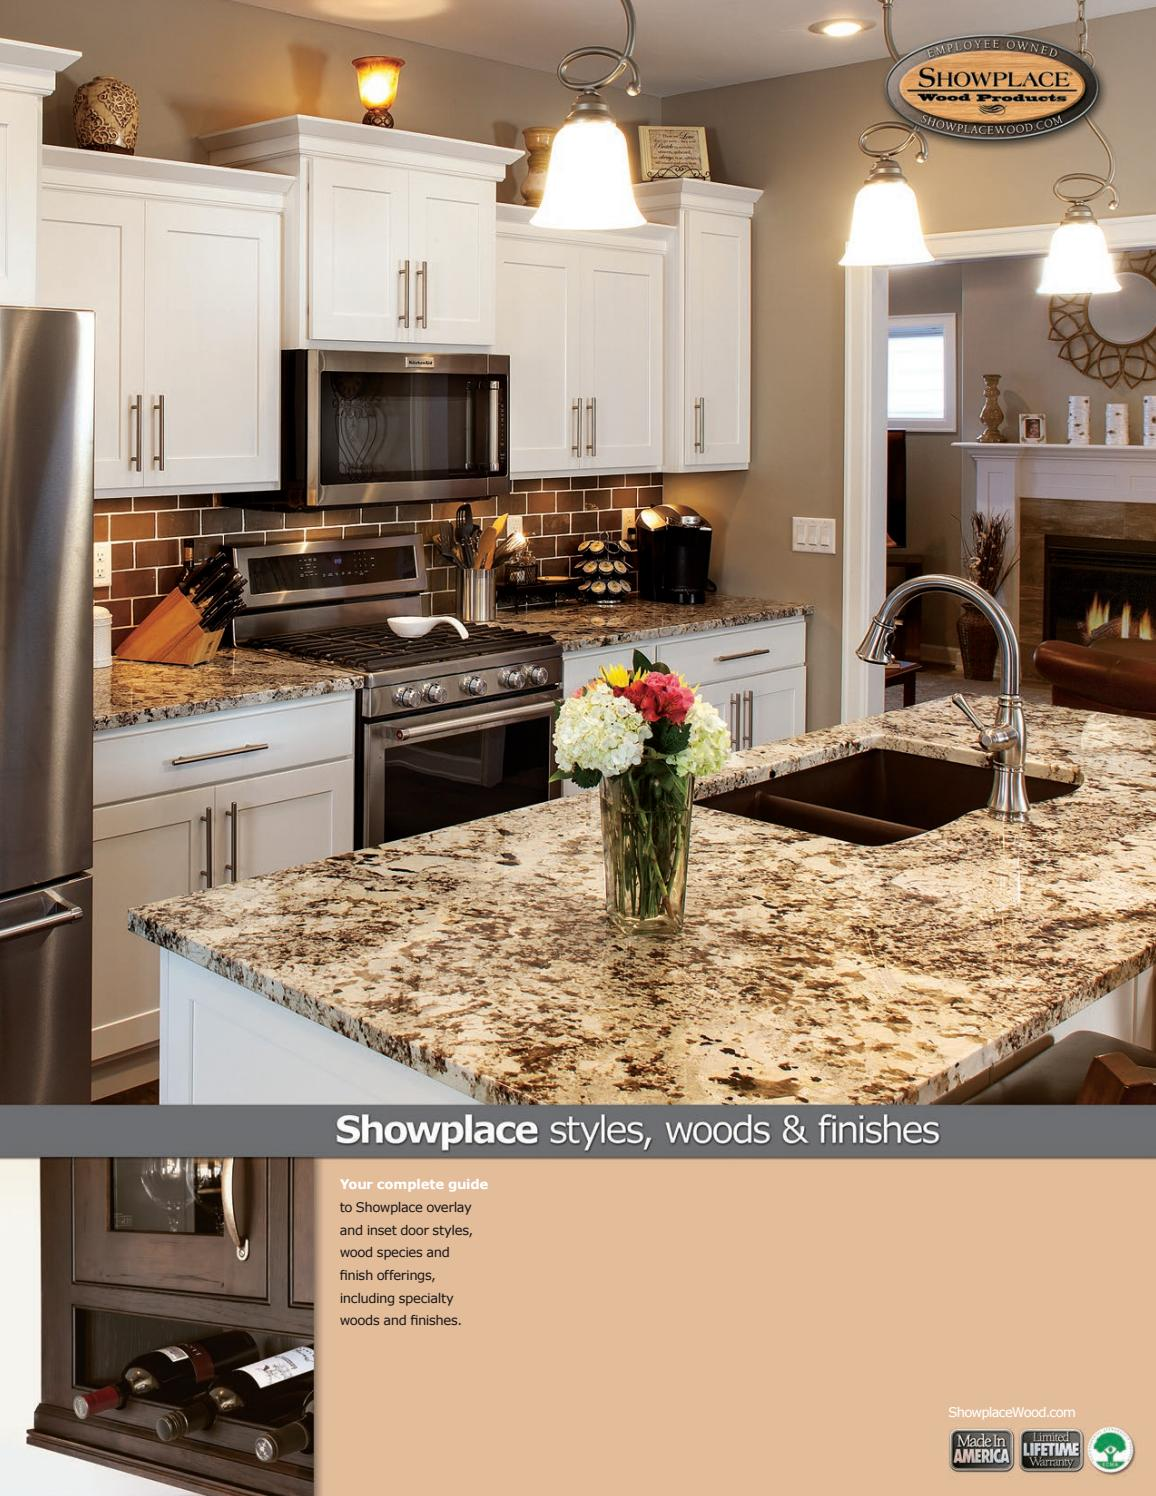 Showplace Cabinetry Styles, Woods U0026 Finishes Booklet By Showplace Wood  Products   Issuu